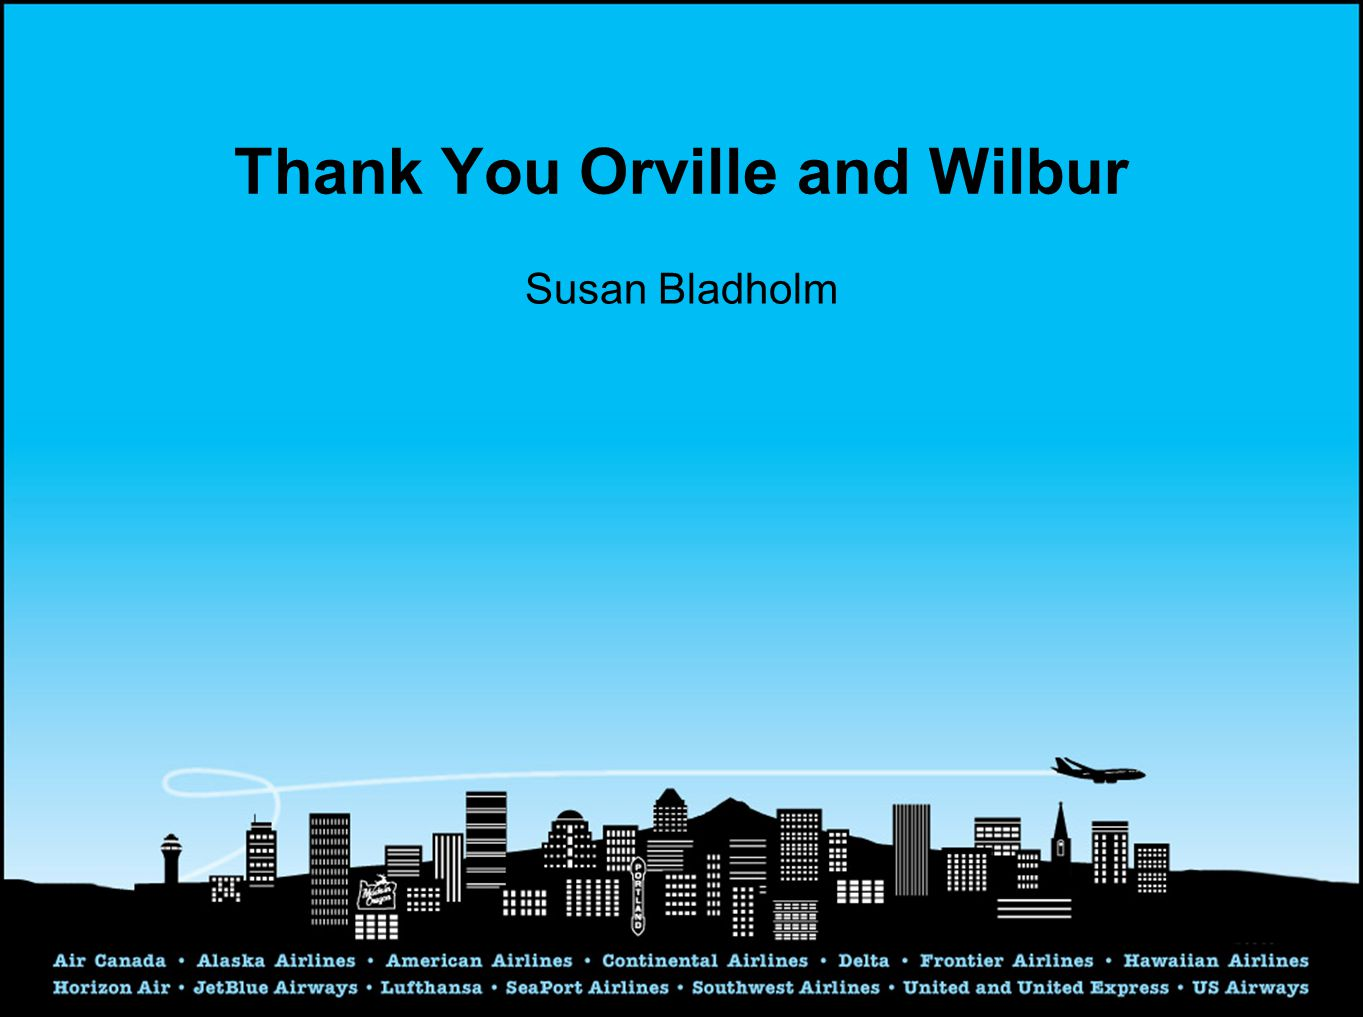 Thank You Orville and Wilbur Susan Bladholm